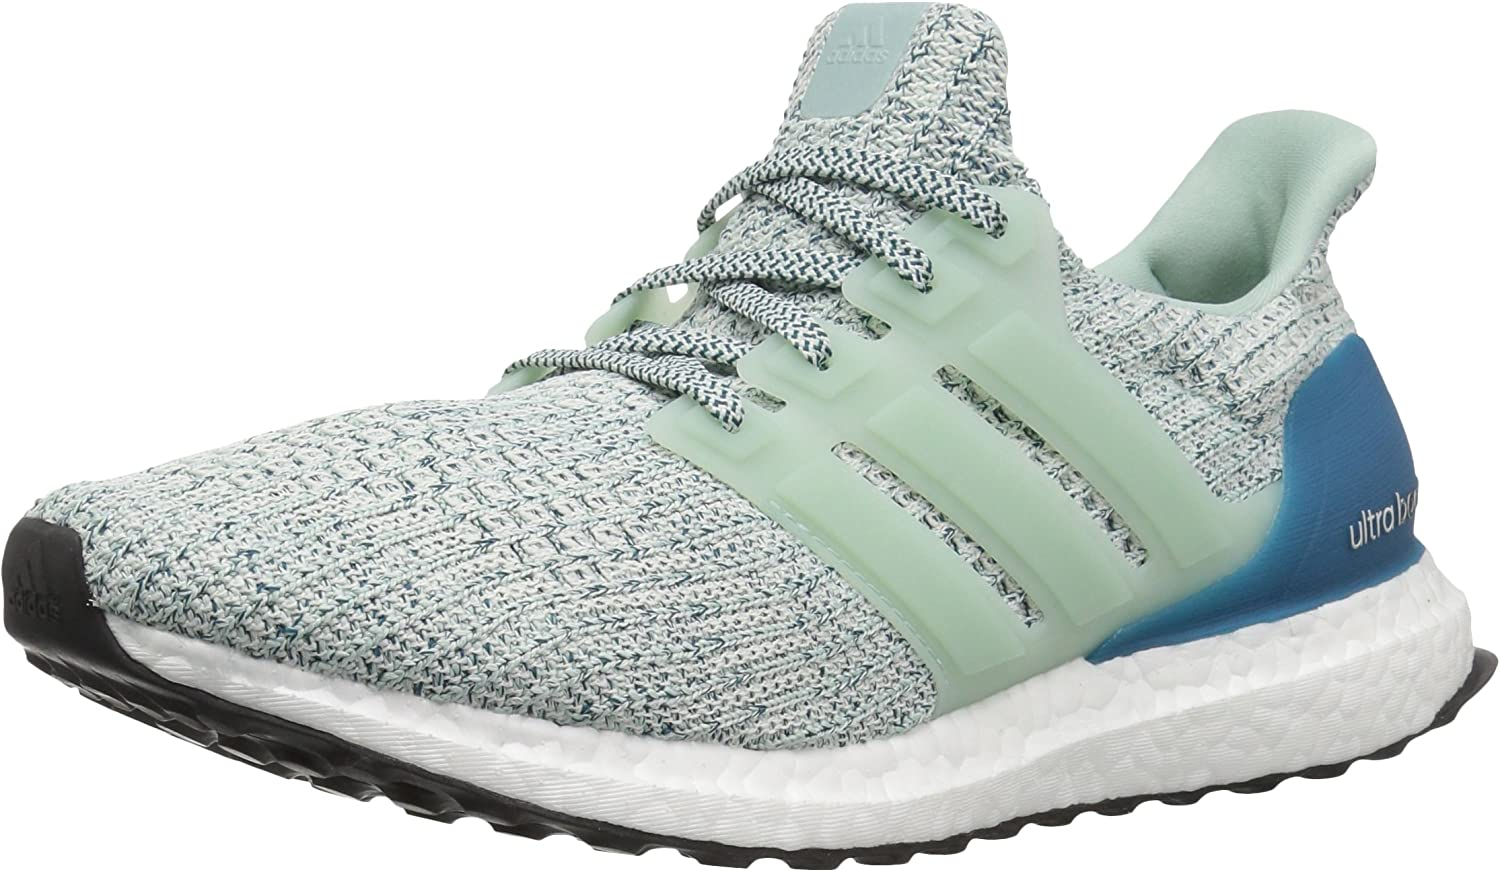 adidas Ultraboost 4.0 Shoe – Women s Running